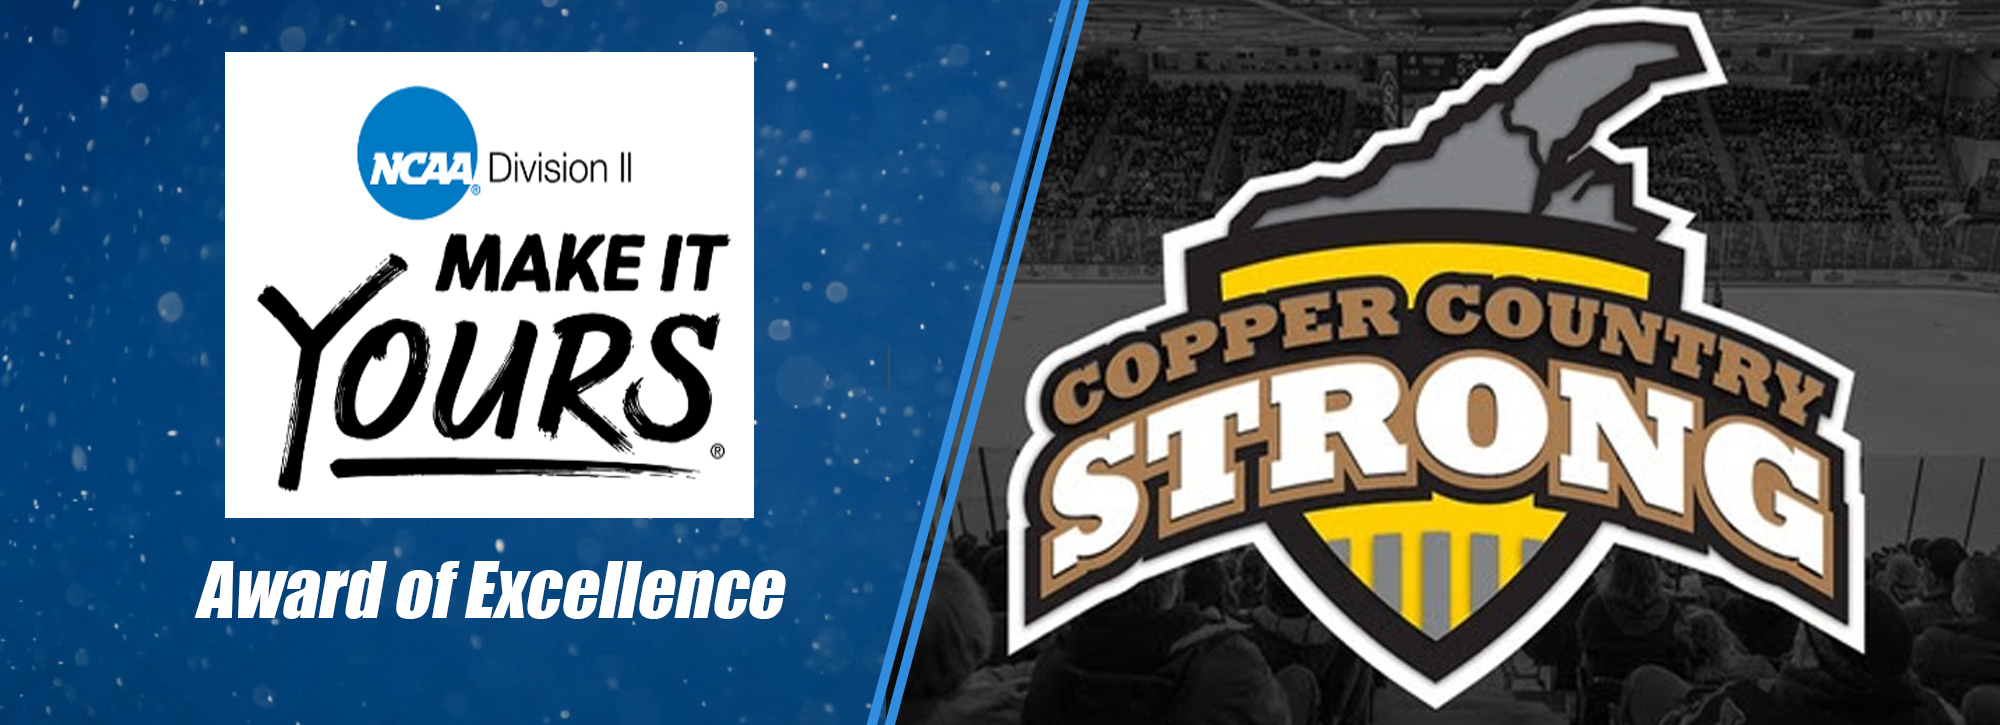 MTU's Copper Country Strong is named DII Award of Excellence finalist